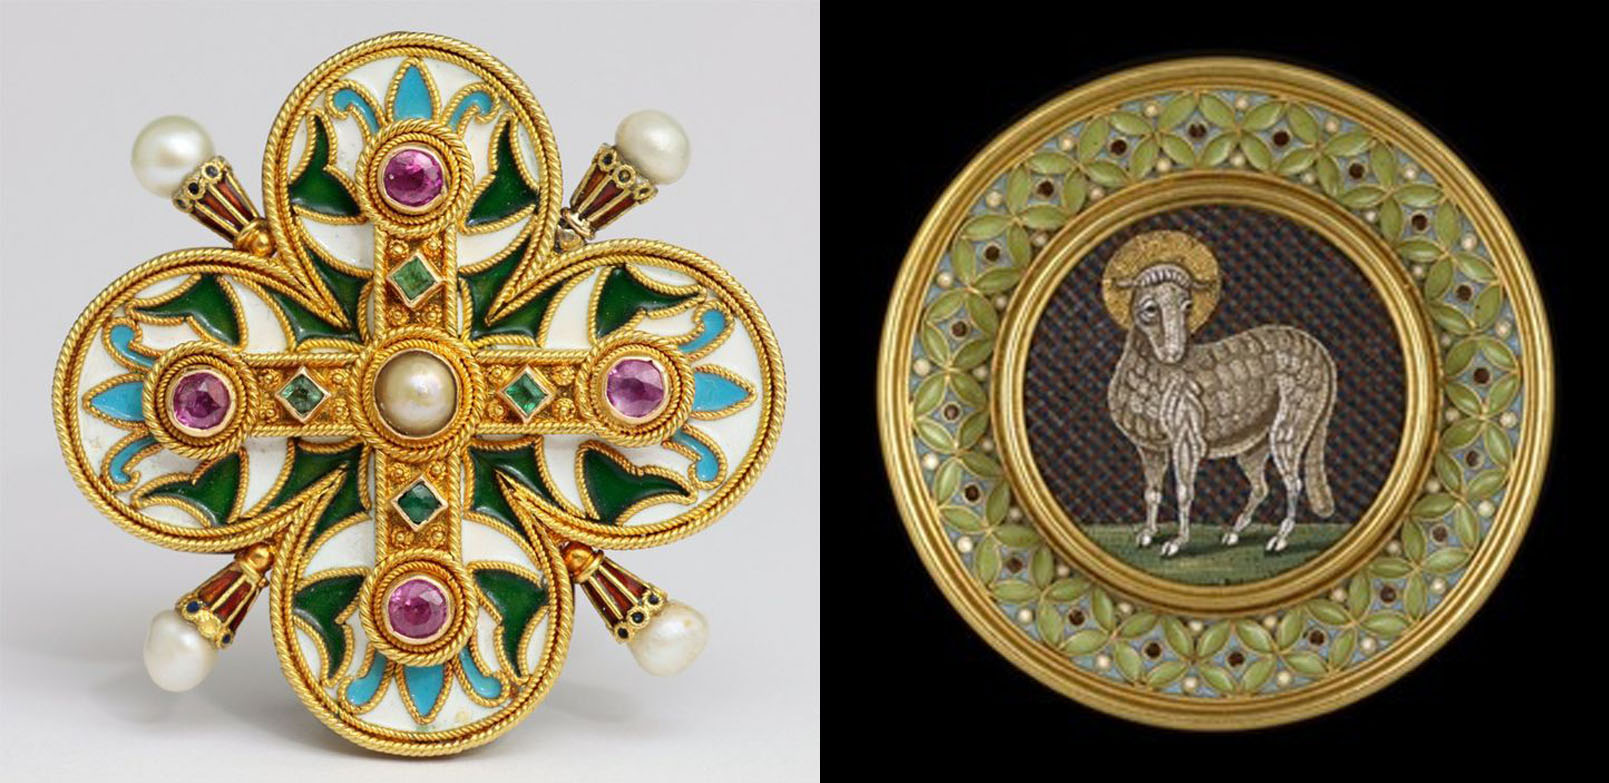 Left: A bloomed gold brooch, with cannetille wire cloisonne enameling, emeralds, pink sapphires and natural pearls, c. 1862 by Castellani Right: A bloomed gold pendant, with a cloisonne boarder framing a micro-mosaic of the Lamb of God in the center, c. 1860 by Castellani